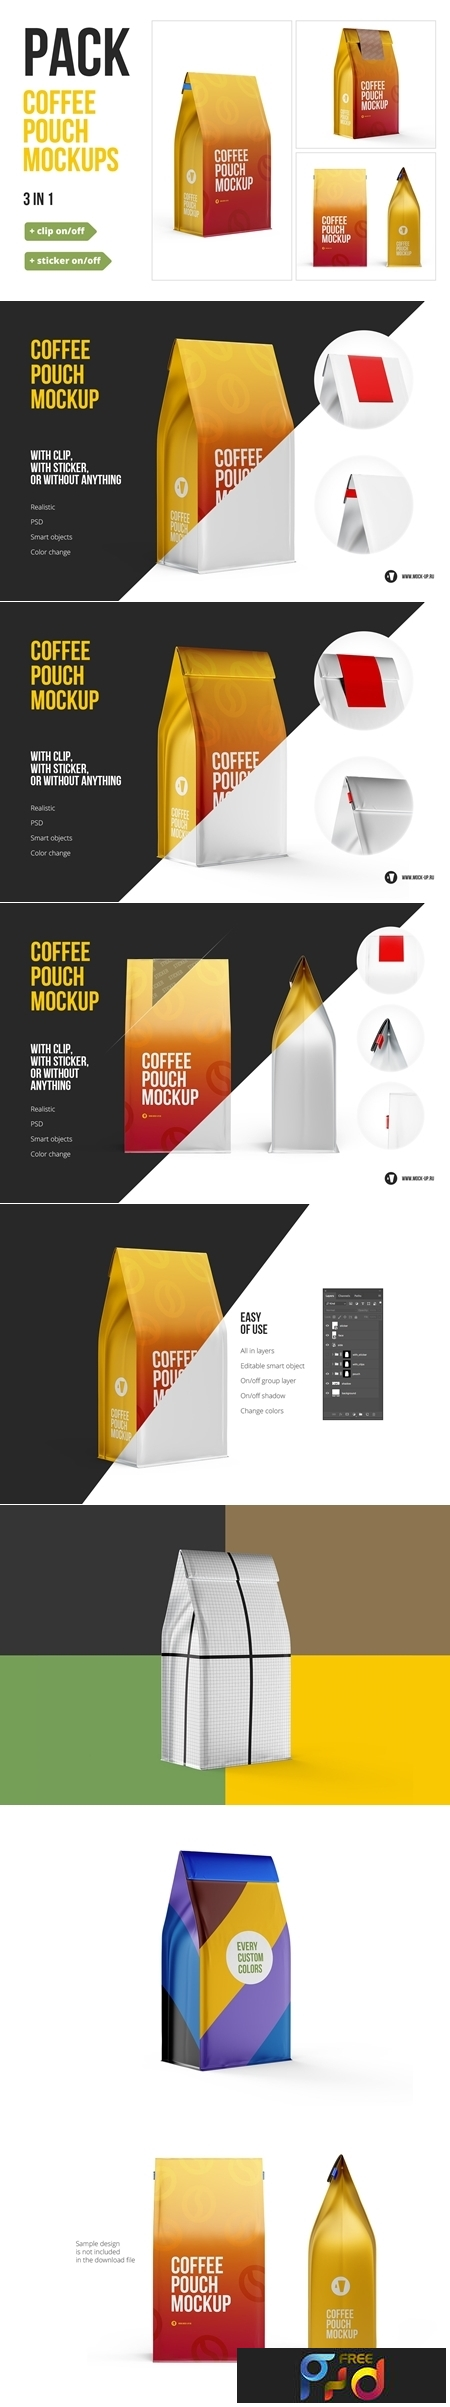 Coffee Pouch Mockup 3 in 1 Pack 3716084 1